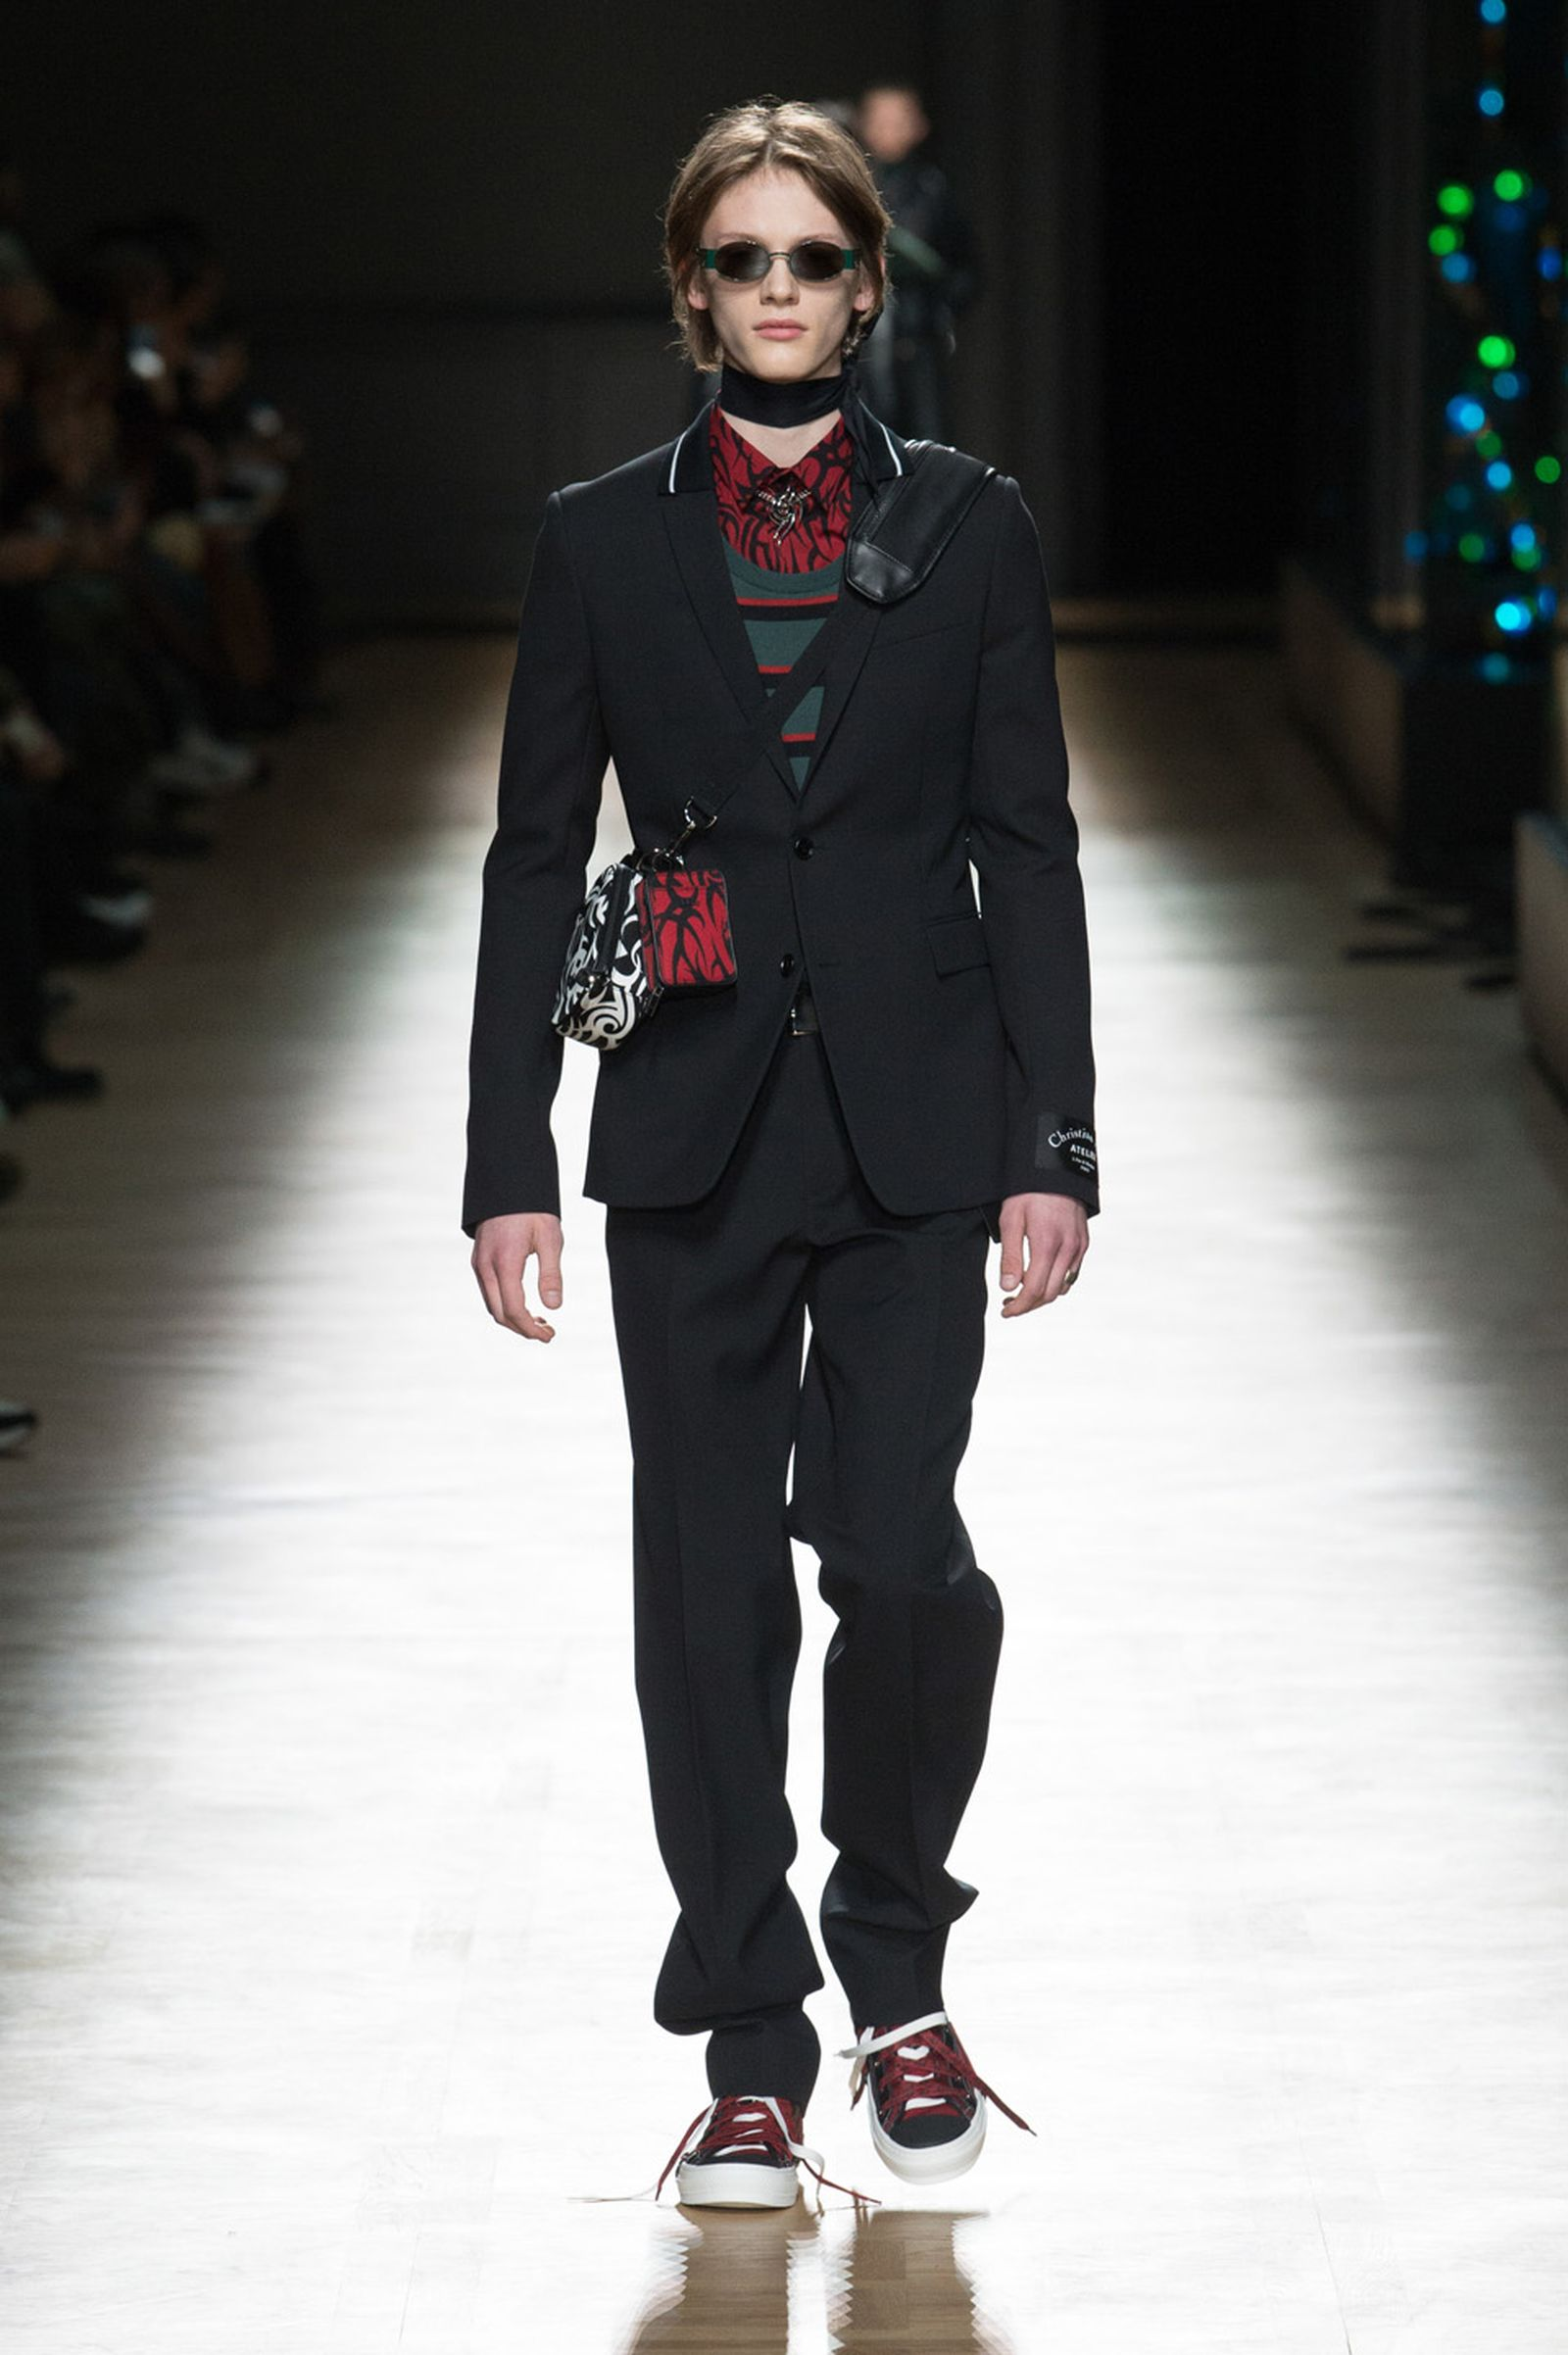 DIOR HOMME WINTER 18 19 BY PATRICE STABLE look15 Fall/WInter 2018 runway